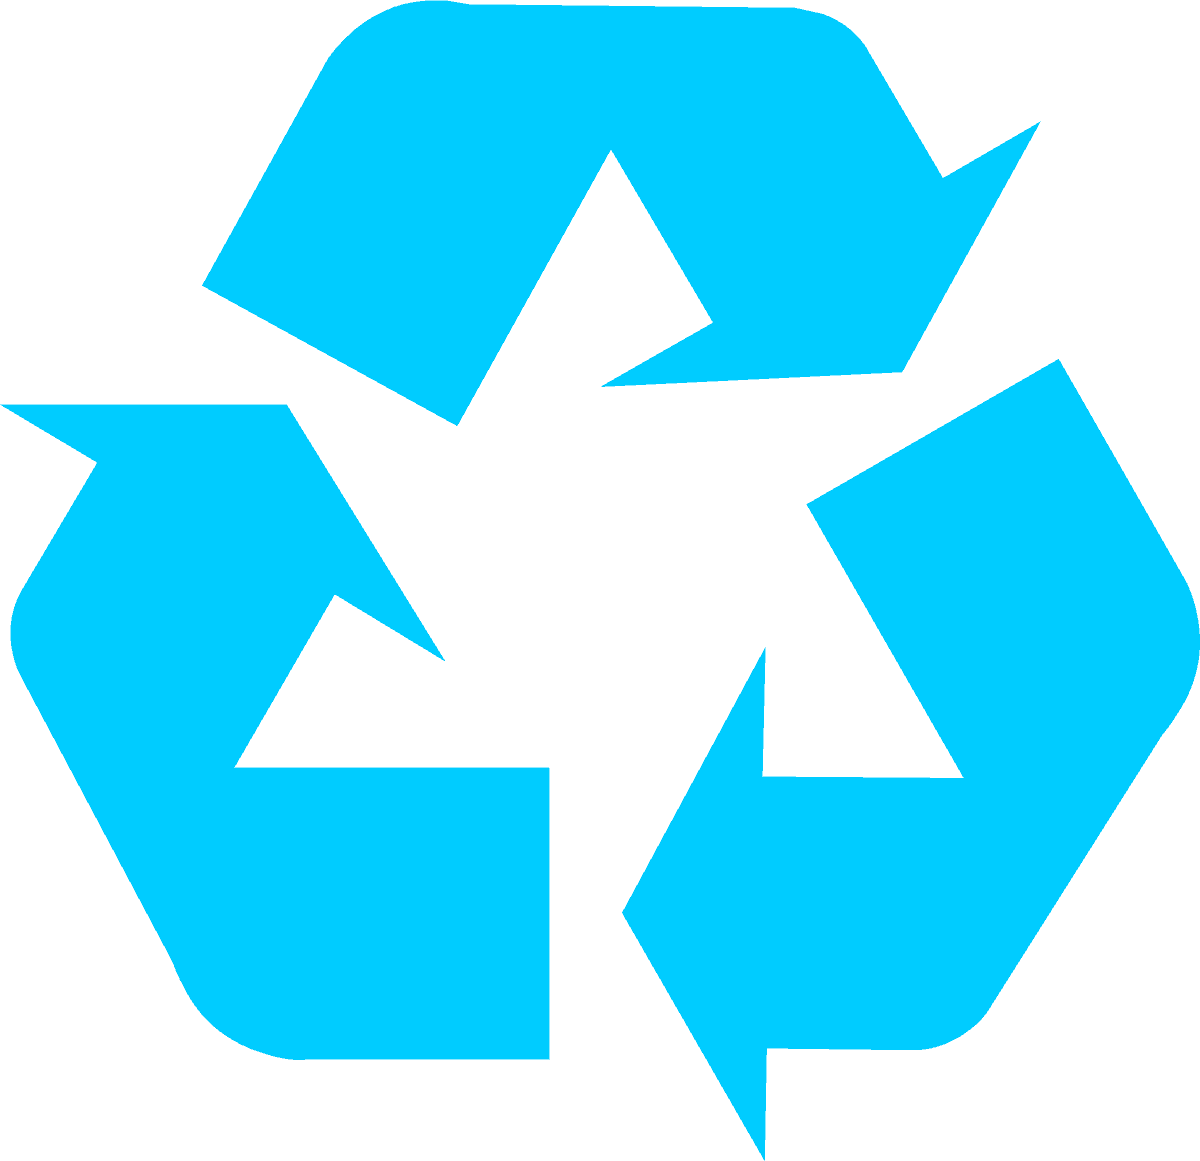 recycling-symbol-icon-solid-light-blue